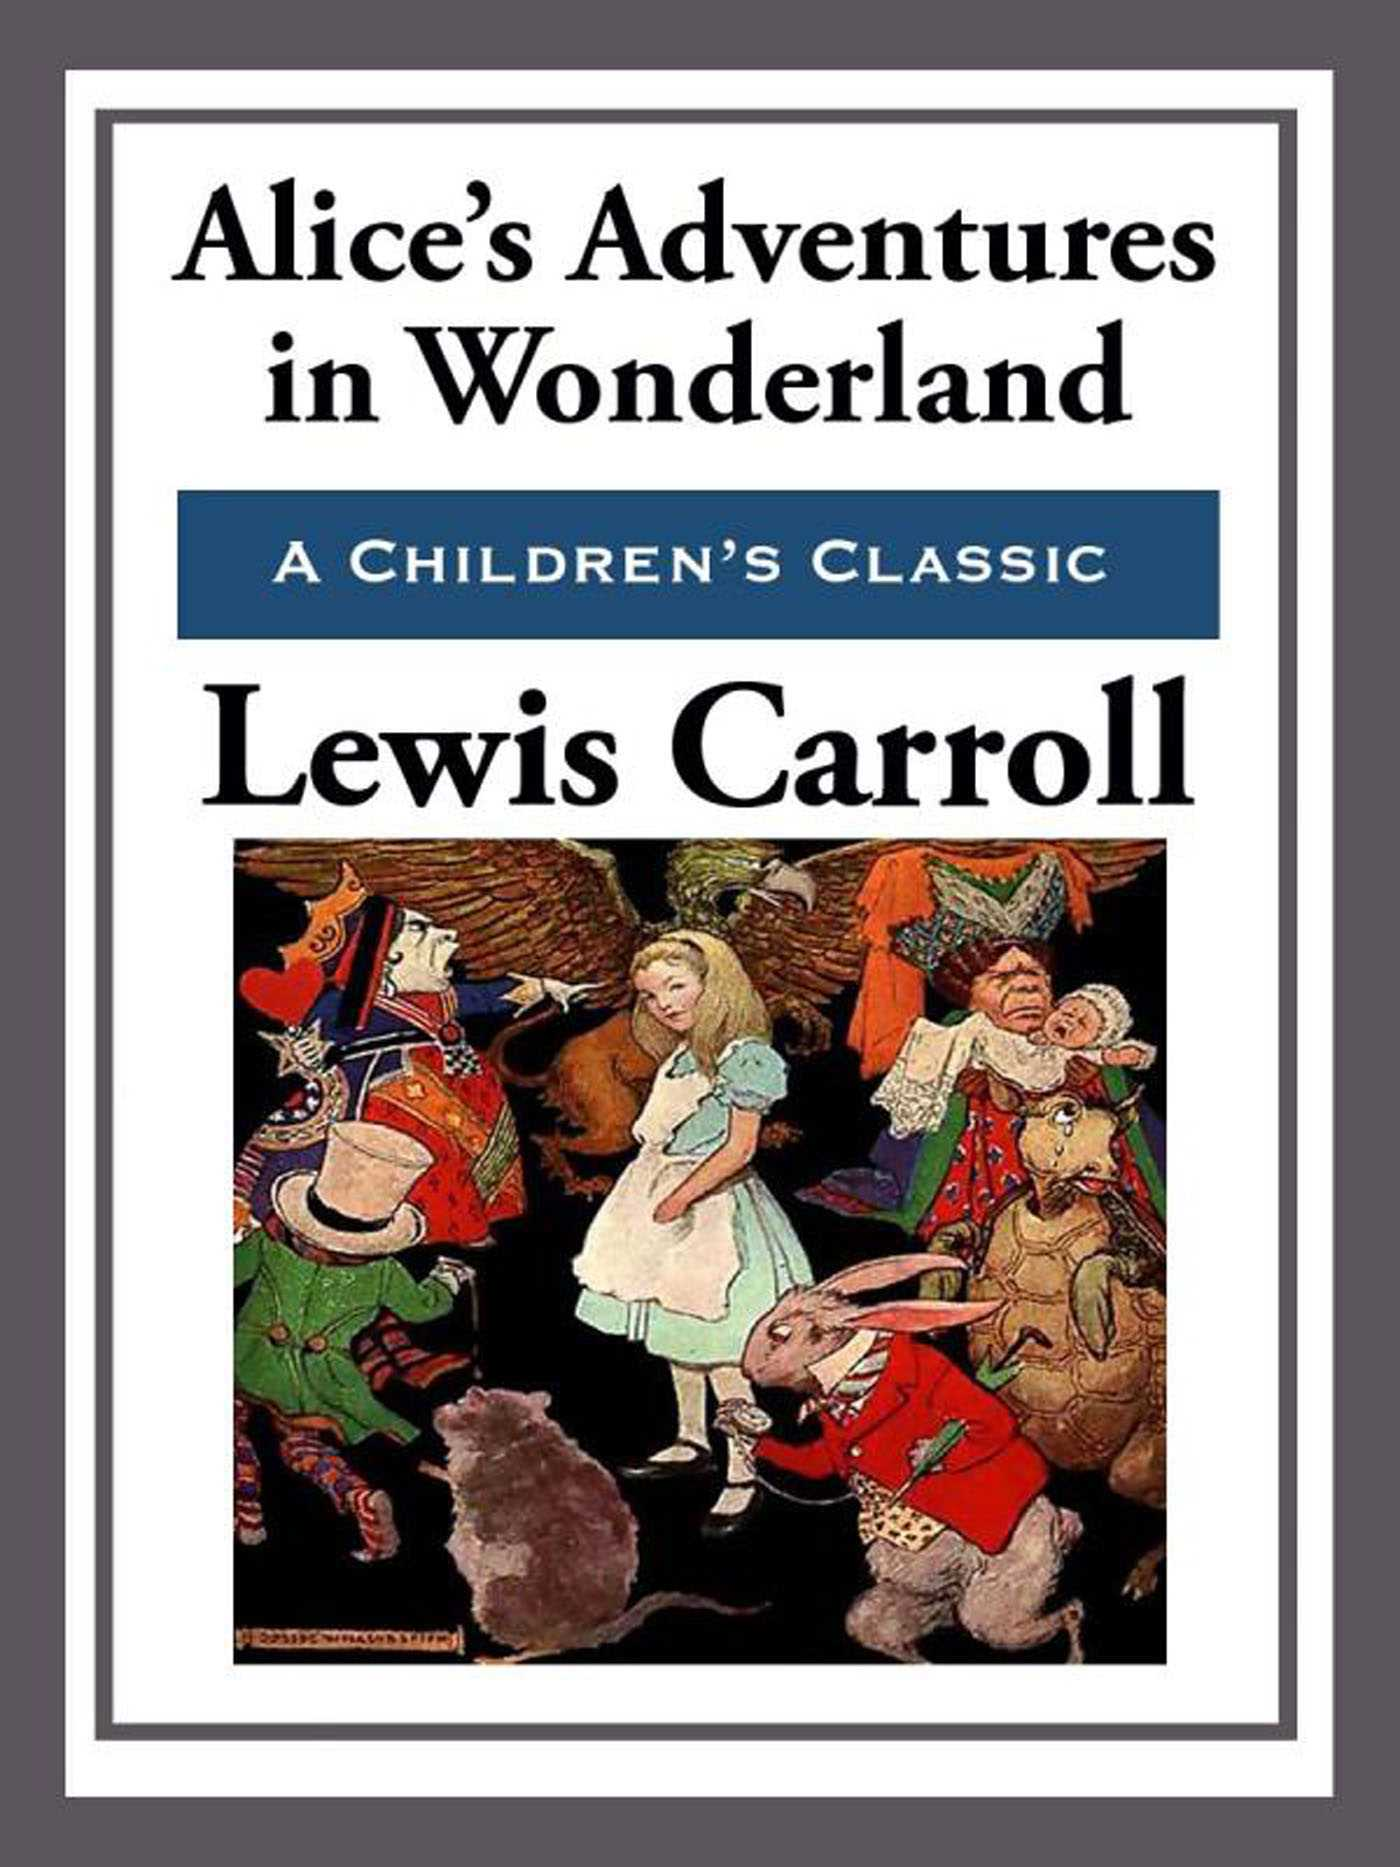 thesis statement for alices adventures in wonderland Thesis statement argumentative compare and contrast log in × scroll to top home gender stereotyping in alice's adventures in wonderland by lewis carroll pages 6.